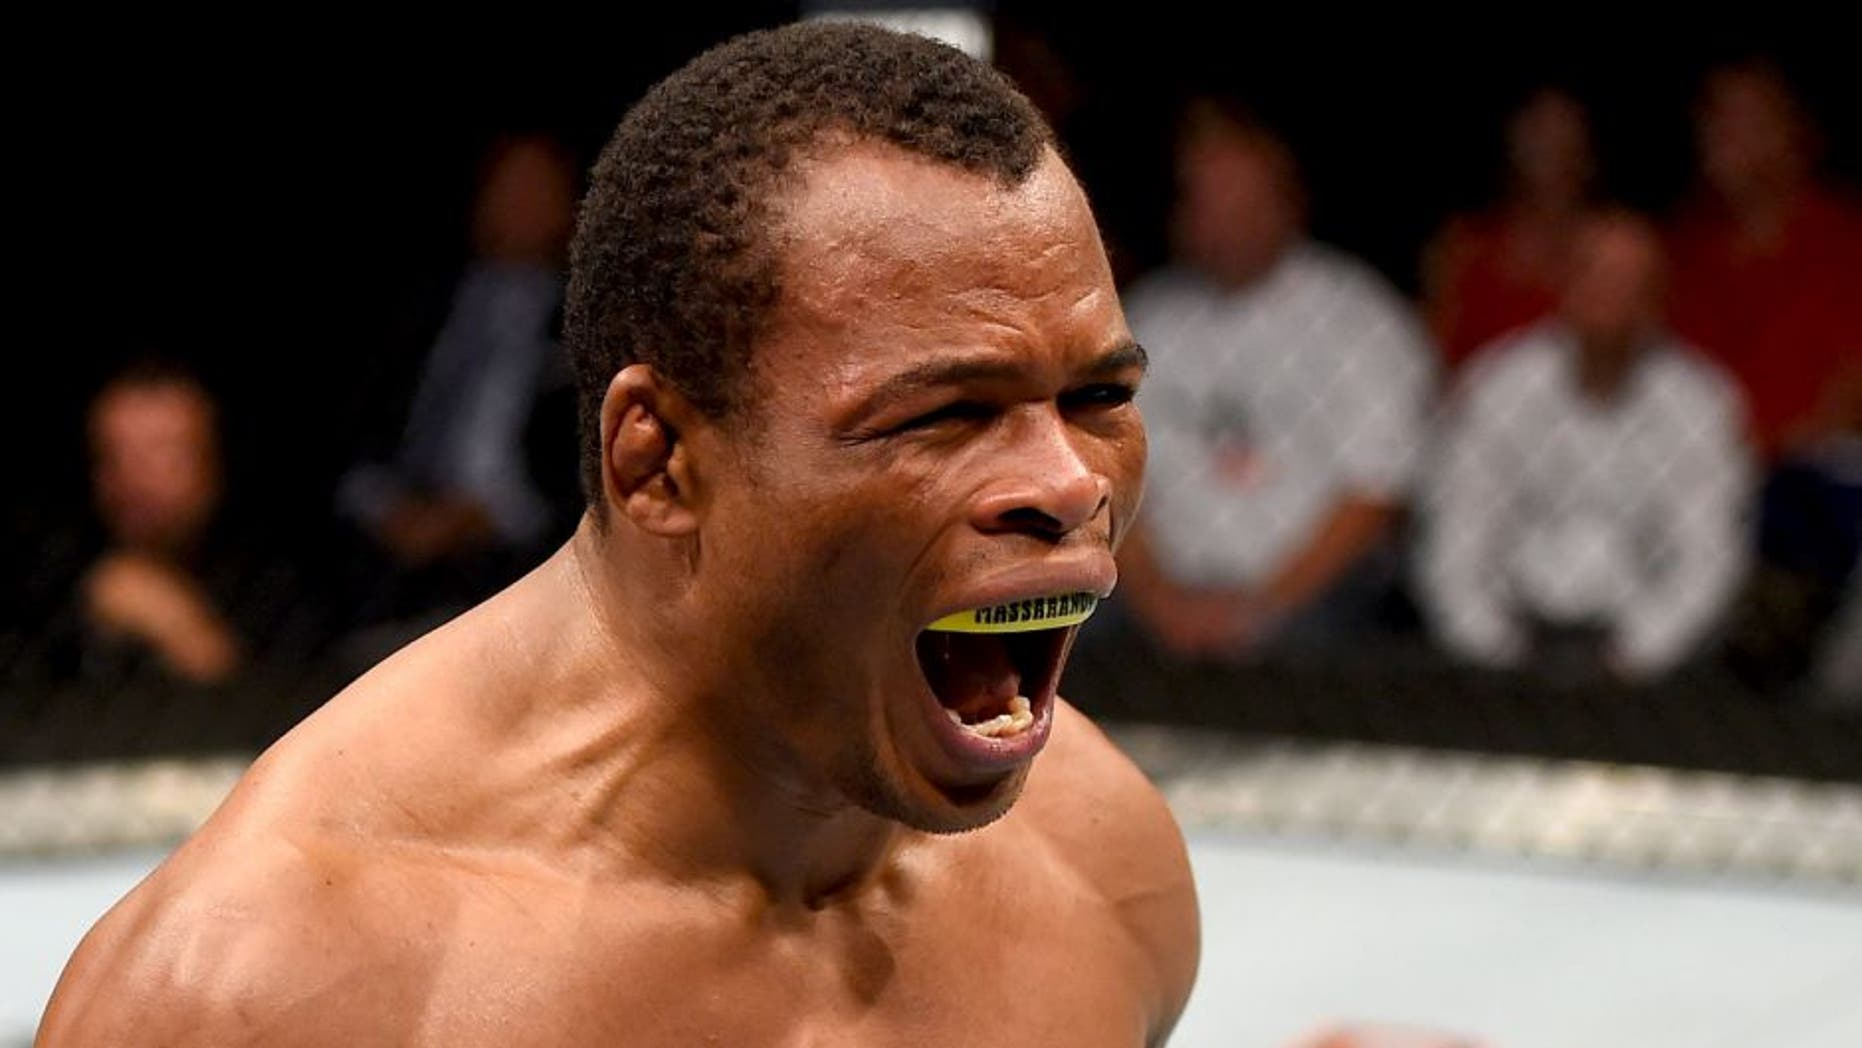 SASKATOON, SK - AUGUST 23: Francisco Trinaldo of Brazil celebrates after his TKO victory over Chad Laprise in their lightweight bout during the UFC event at the SaskTel Centre on August 23, 2015 in Saskatoon, Saskatchewan, Canada. (Photo by Jeff Bottari/Zuffa LLC/Zuffa LLC via Getty Images)